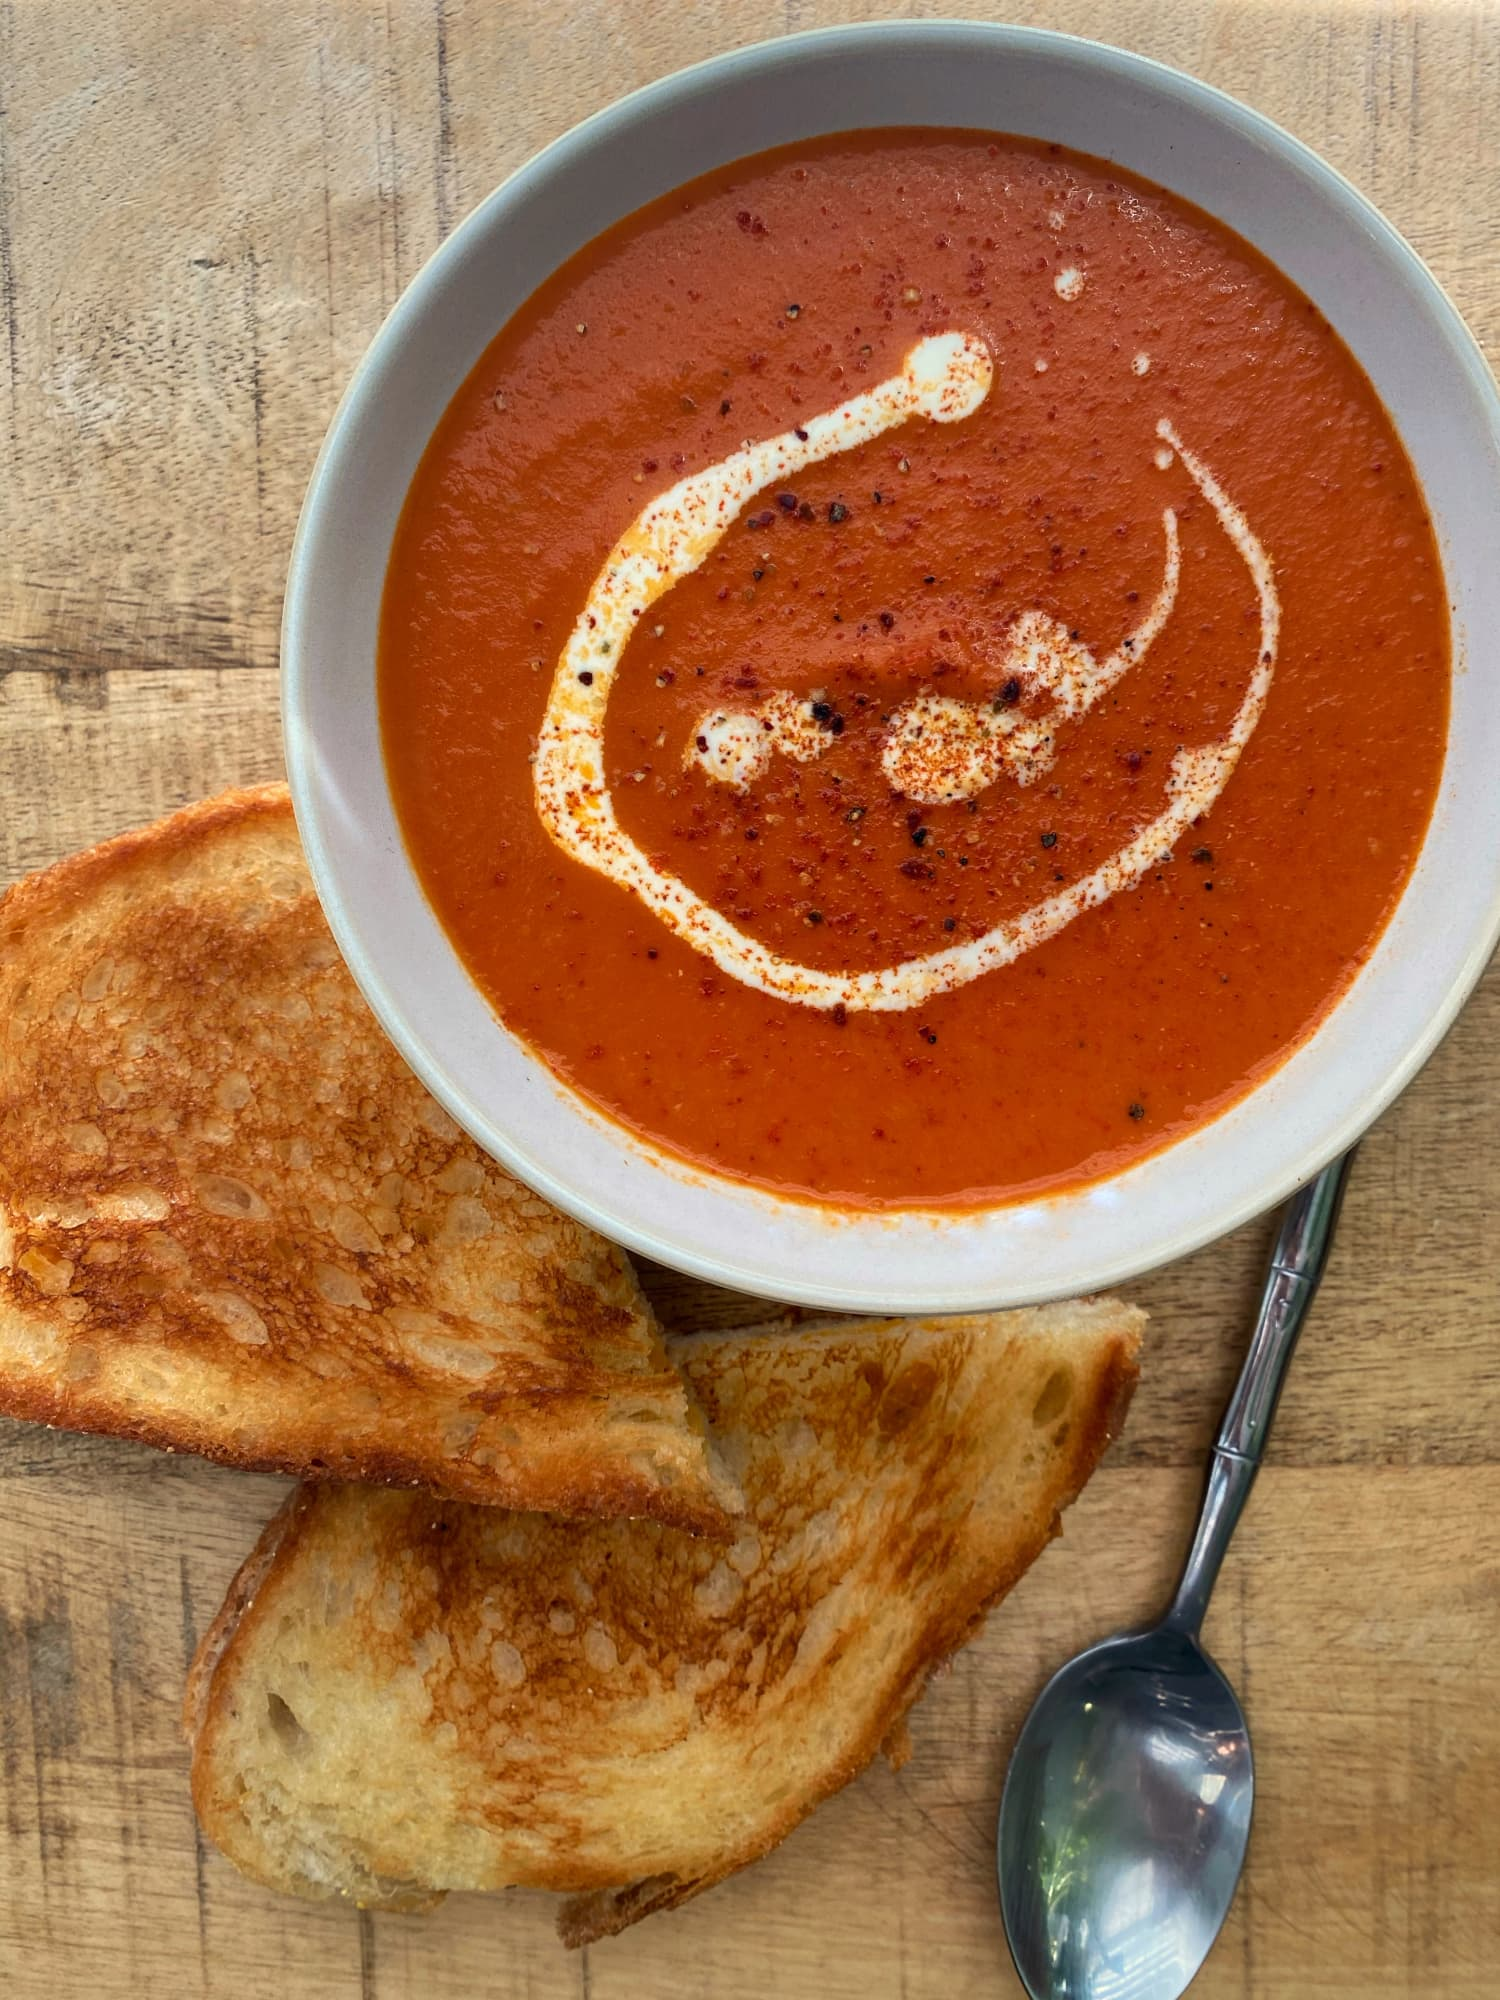 Smitten Kitchen Has a Clever Trick for Making the Best Tomato Soup Ever